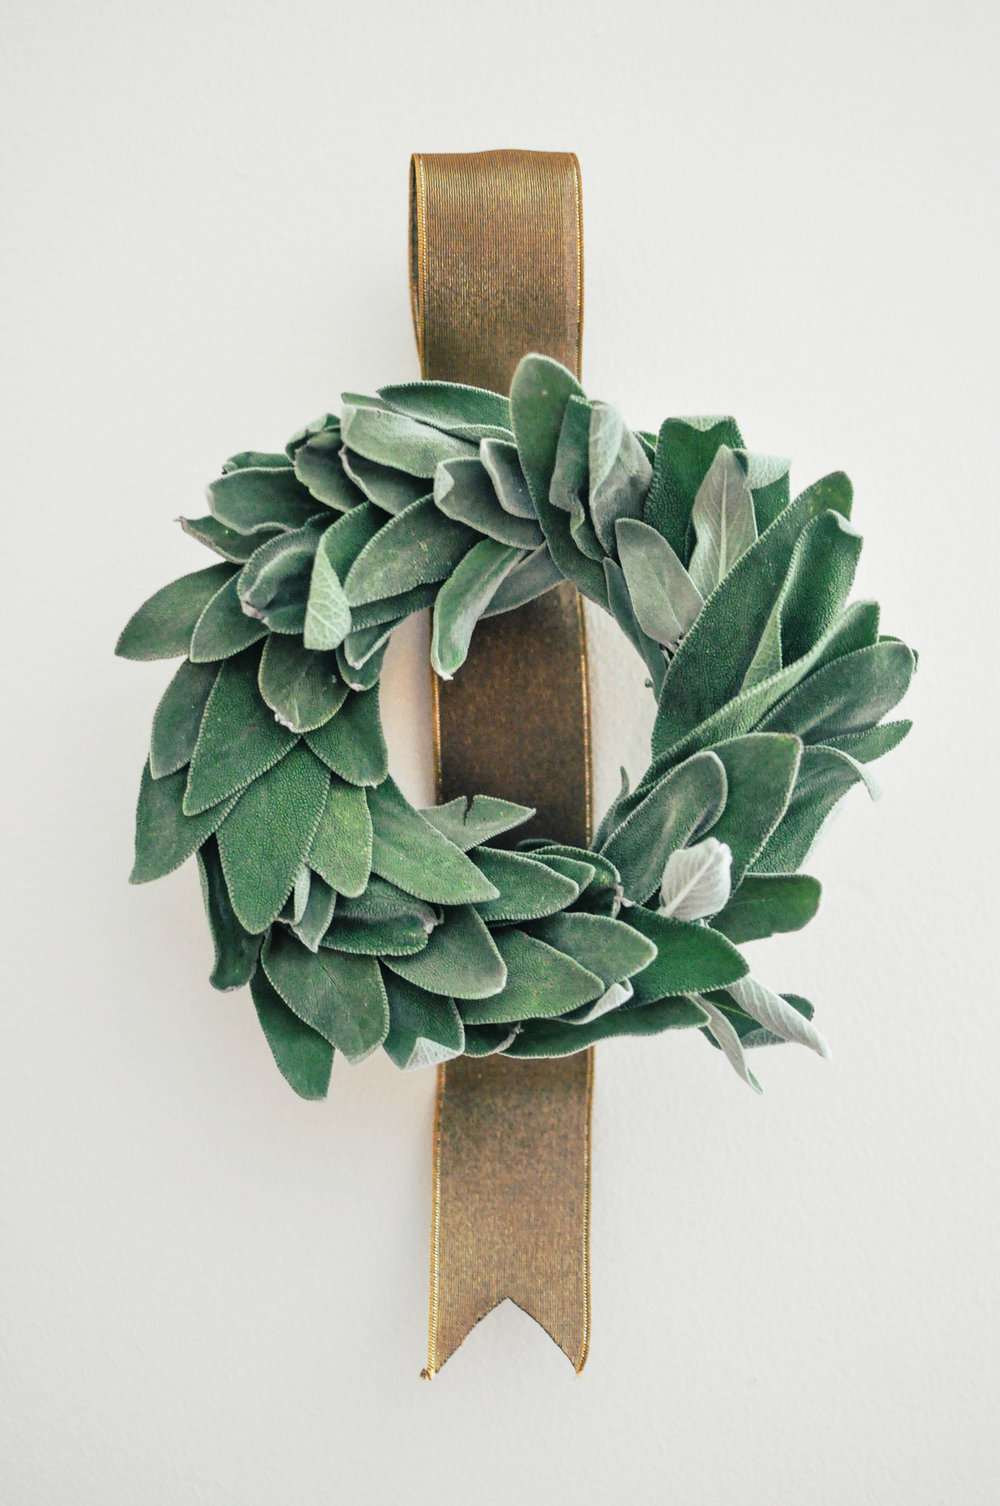 DIY Sage Wreath from This Healthy Table. This easy wreath project can be done in less than 20 minutes and requires just a few items to make. Makes your home smell wonderful!